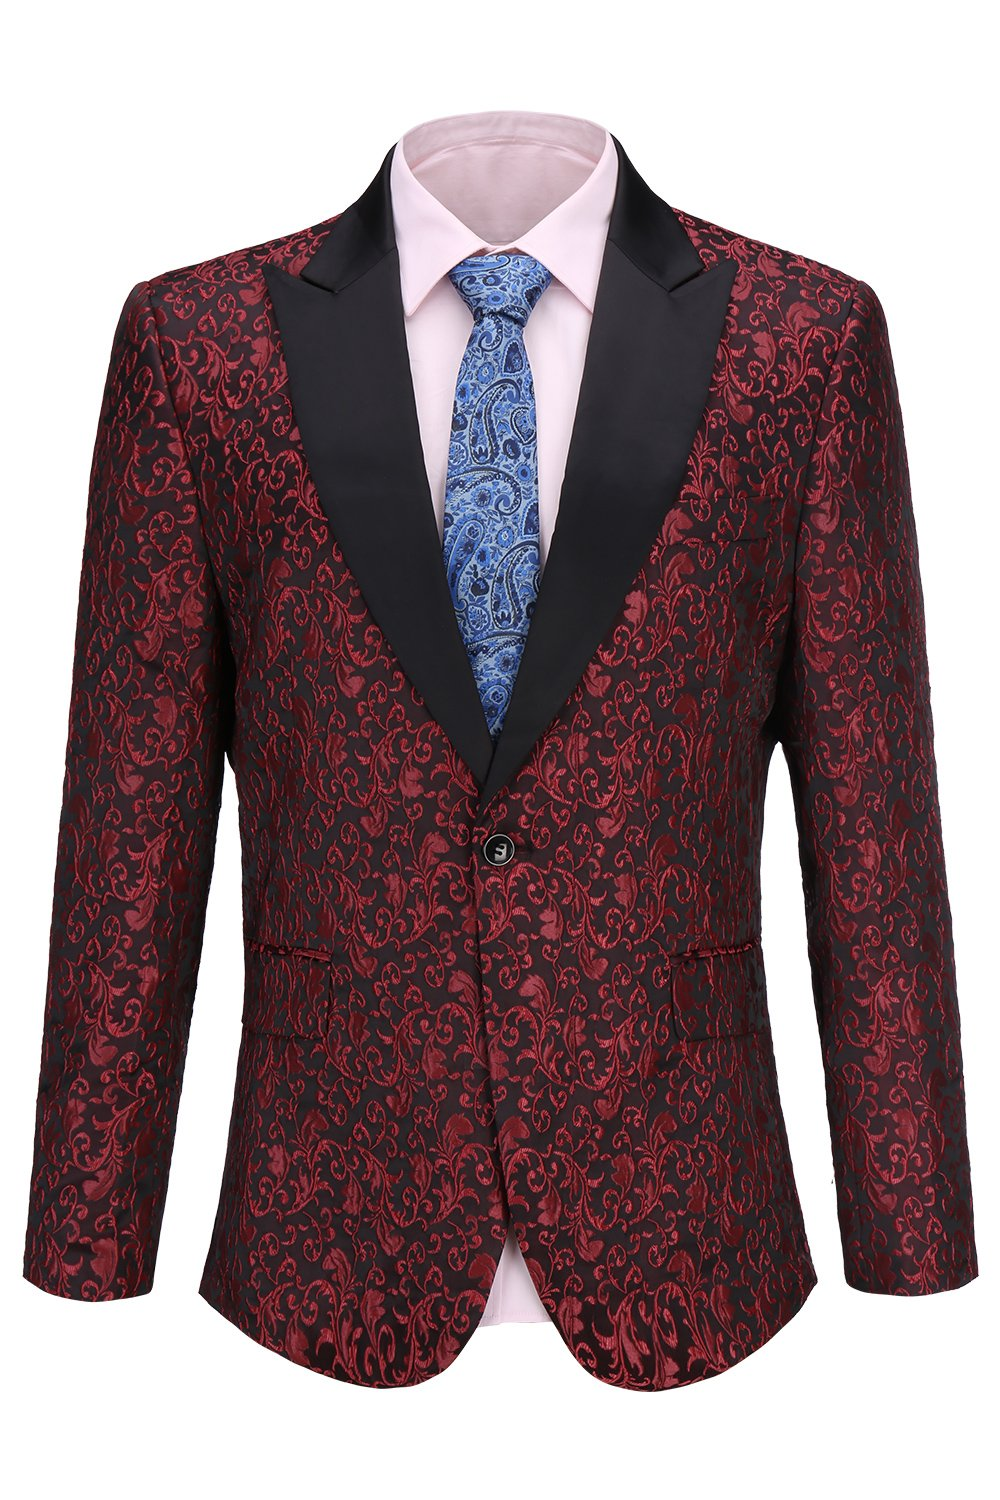 FISOUL Mens Suit Floral Party Dress Suit Stylish Dinner Tuxedo Jacket Wedding Blazer